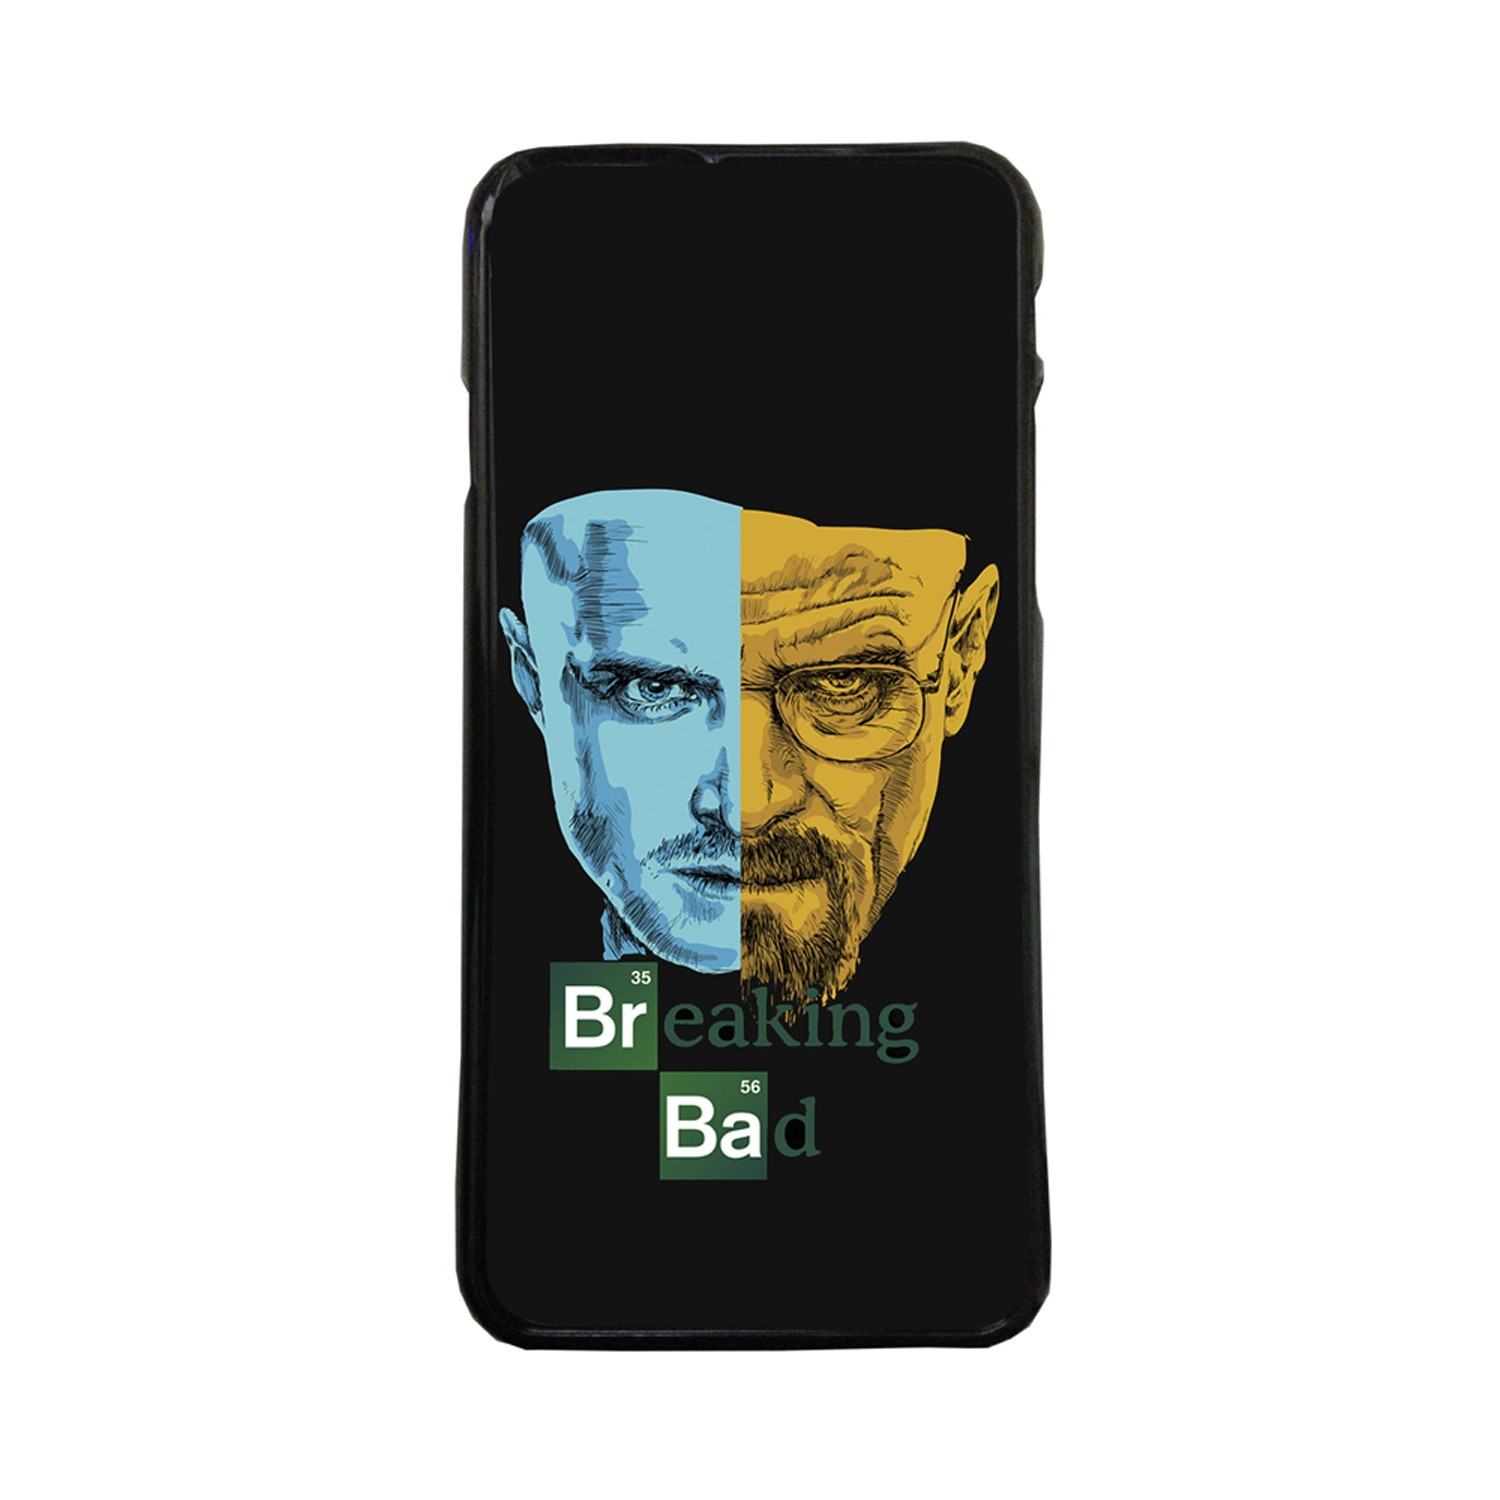 Fundas movil carcasas compatible con sony xperia x modelo Breaking Bad